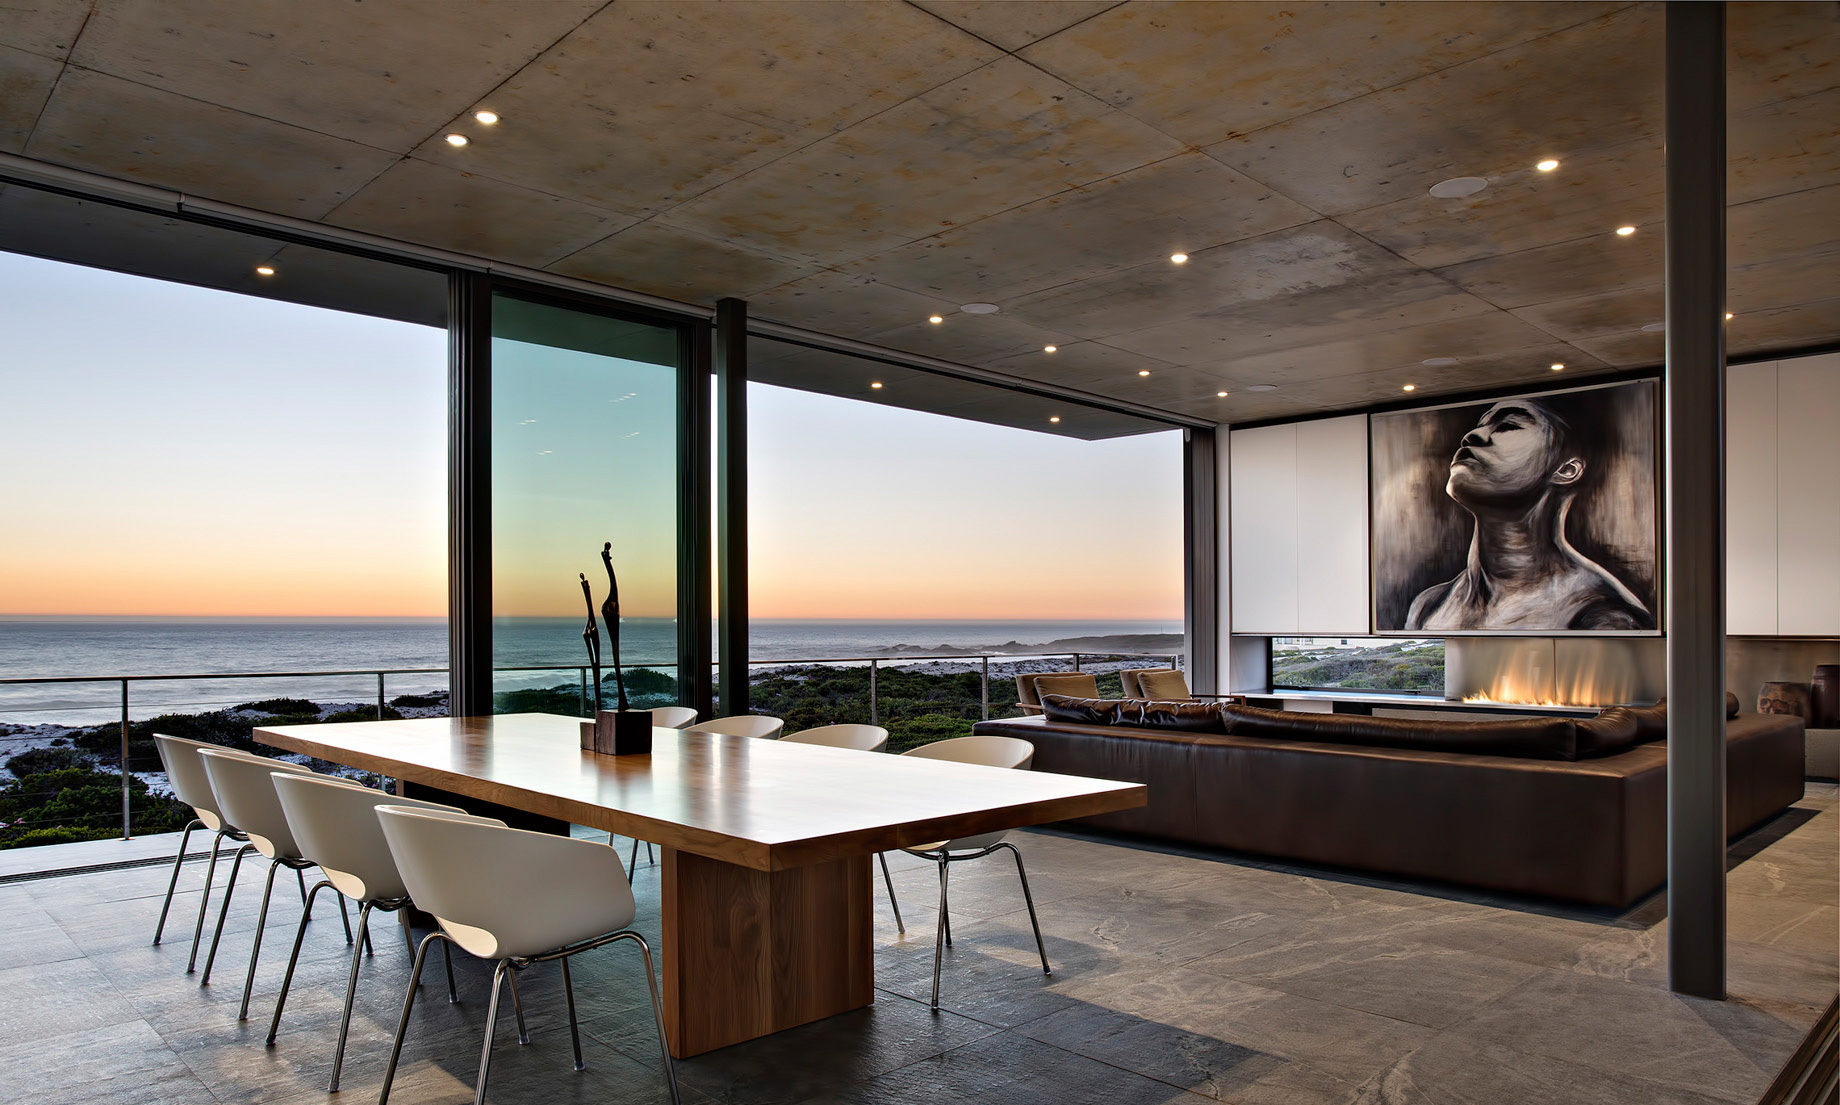 Pearl Bay Residence – Yzerfontein, Western Cape, South Africa